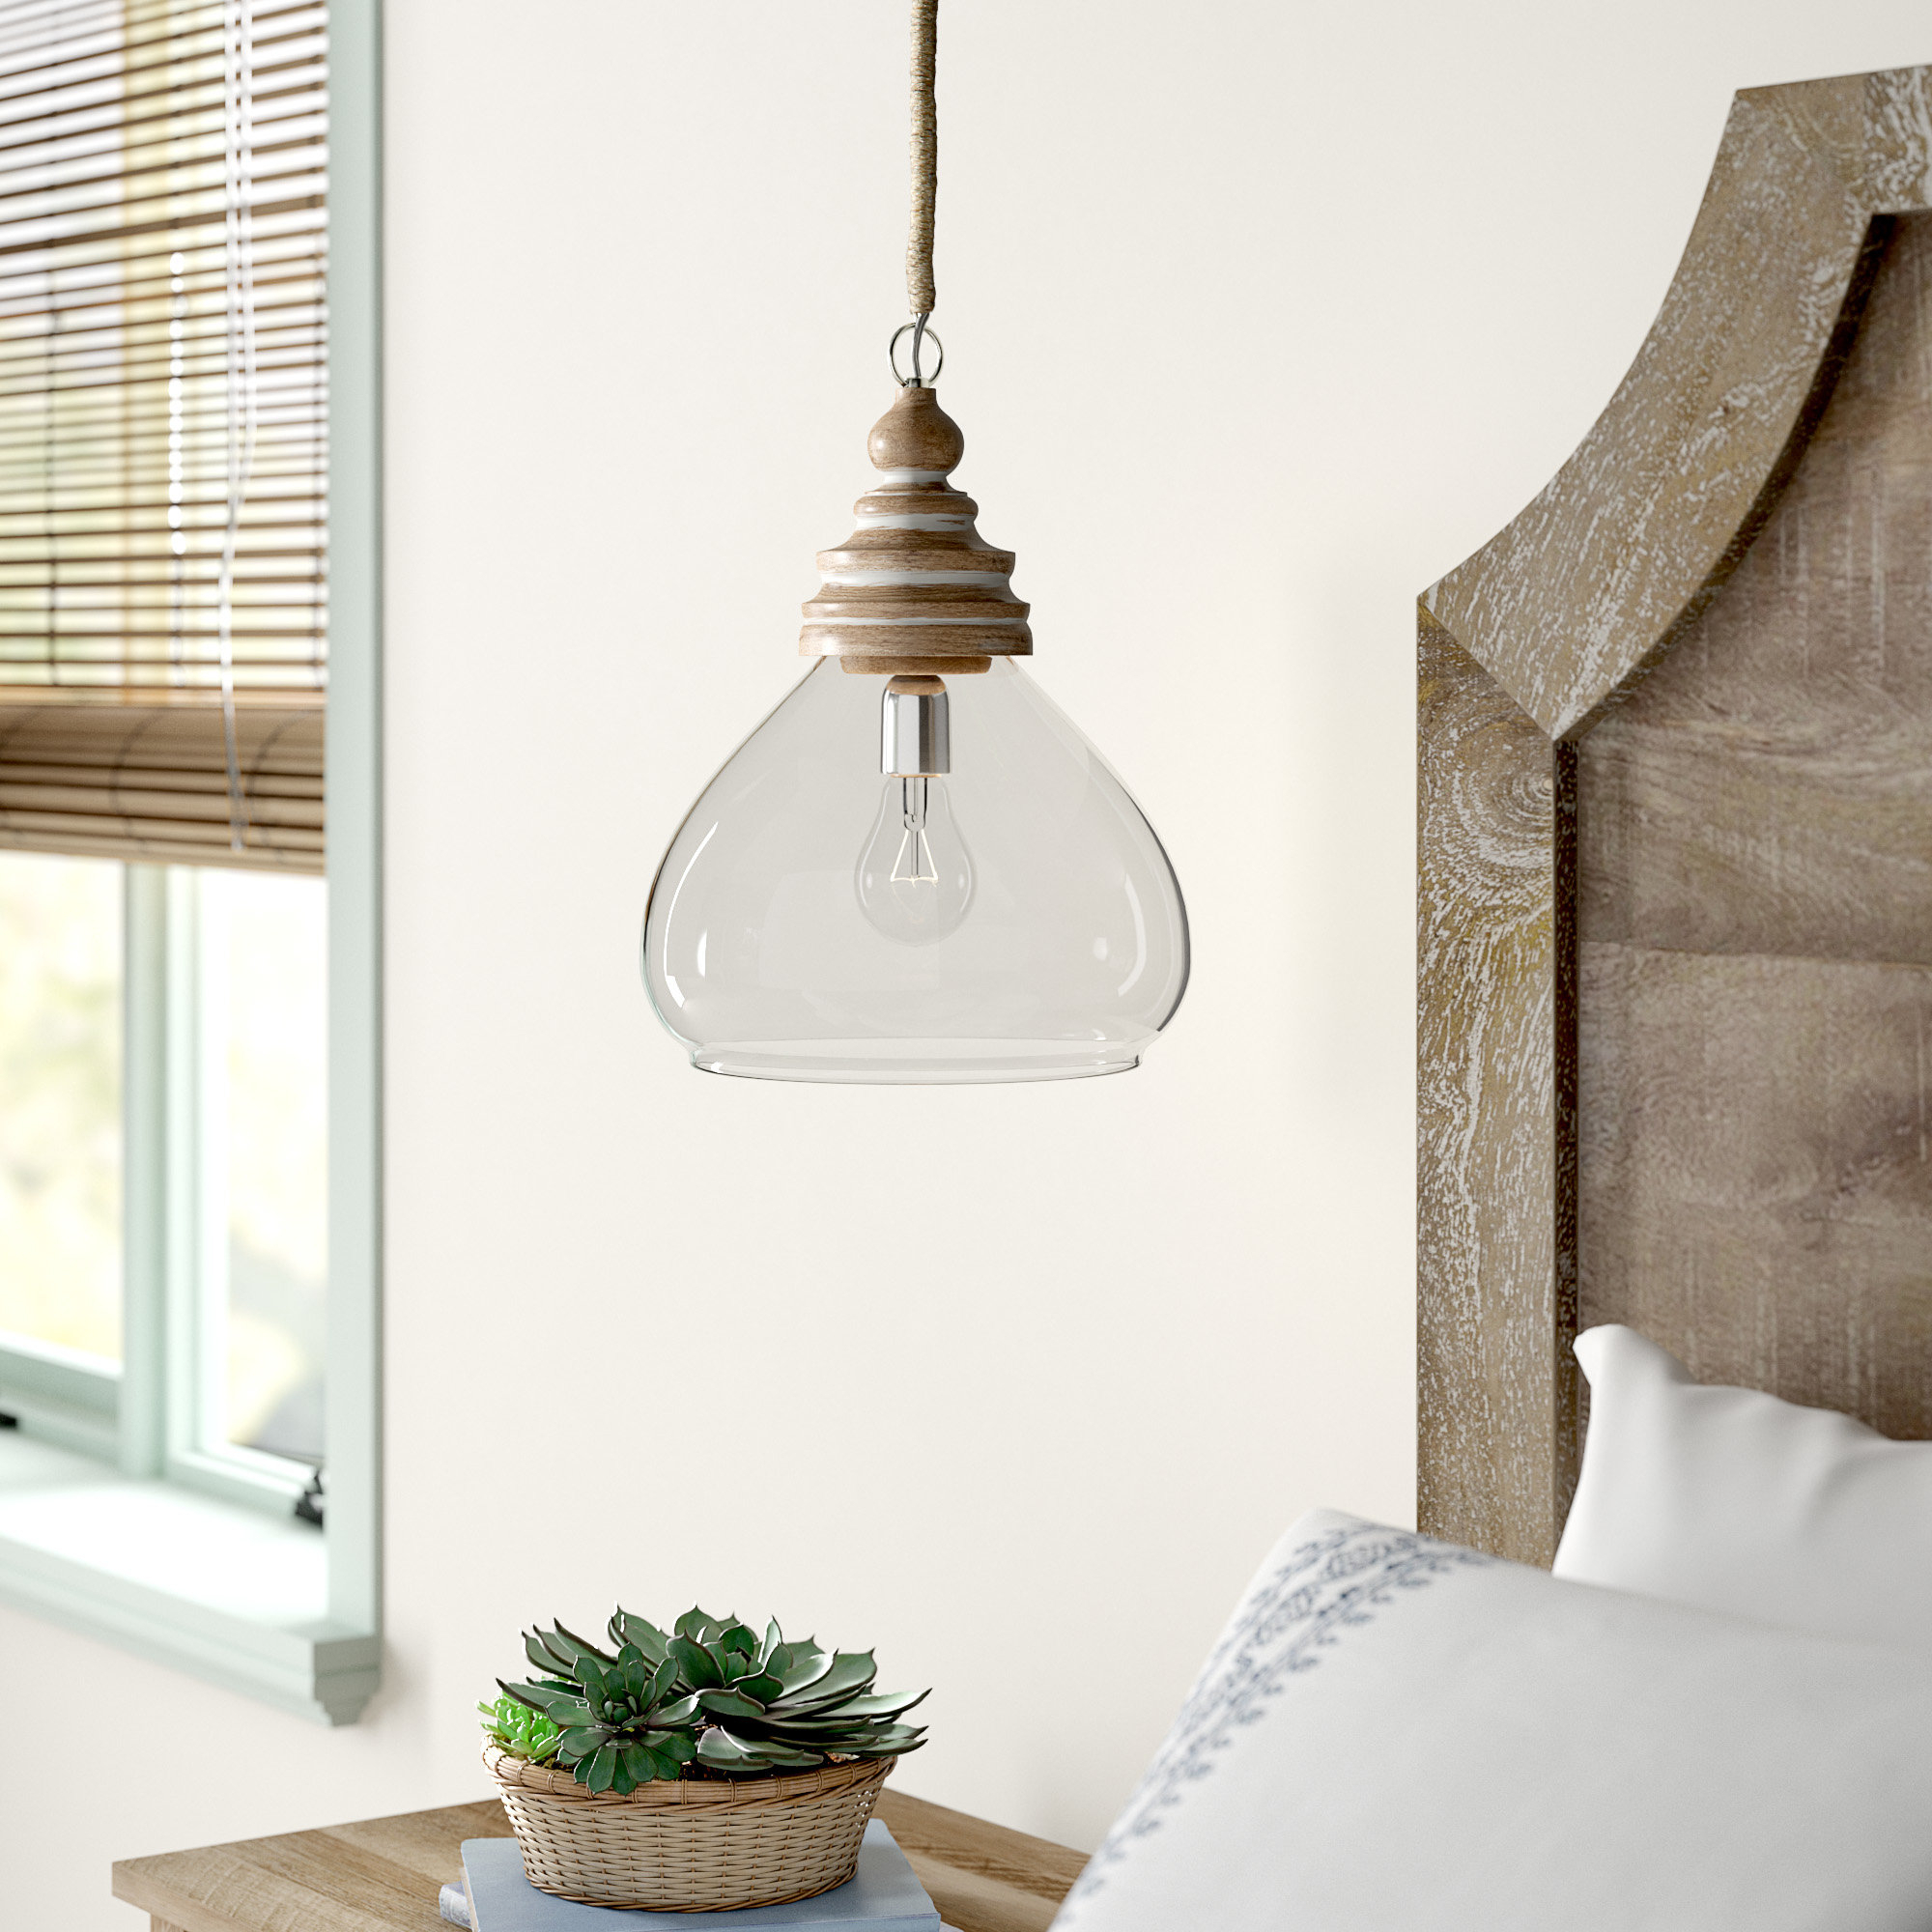 Brisa 1 Light Single Dome Pendant Within Moyer 1 Light Single Cylinder Pendants (View 7 of 30)